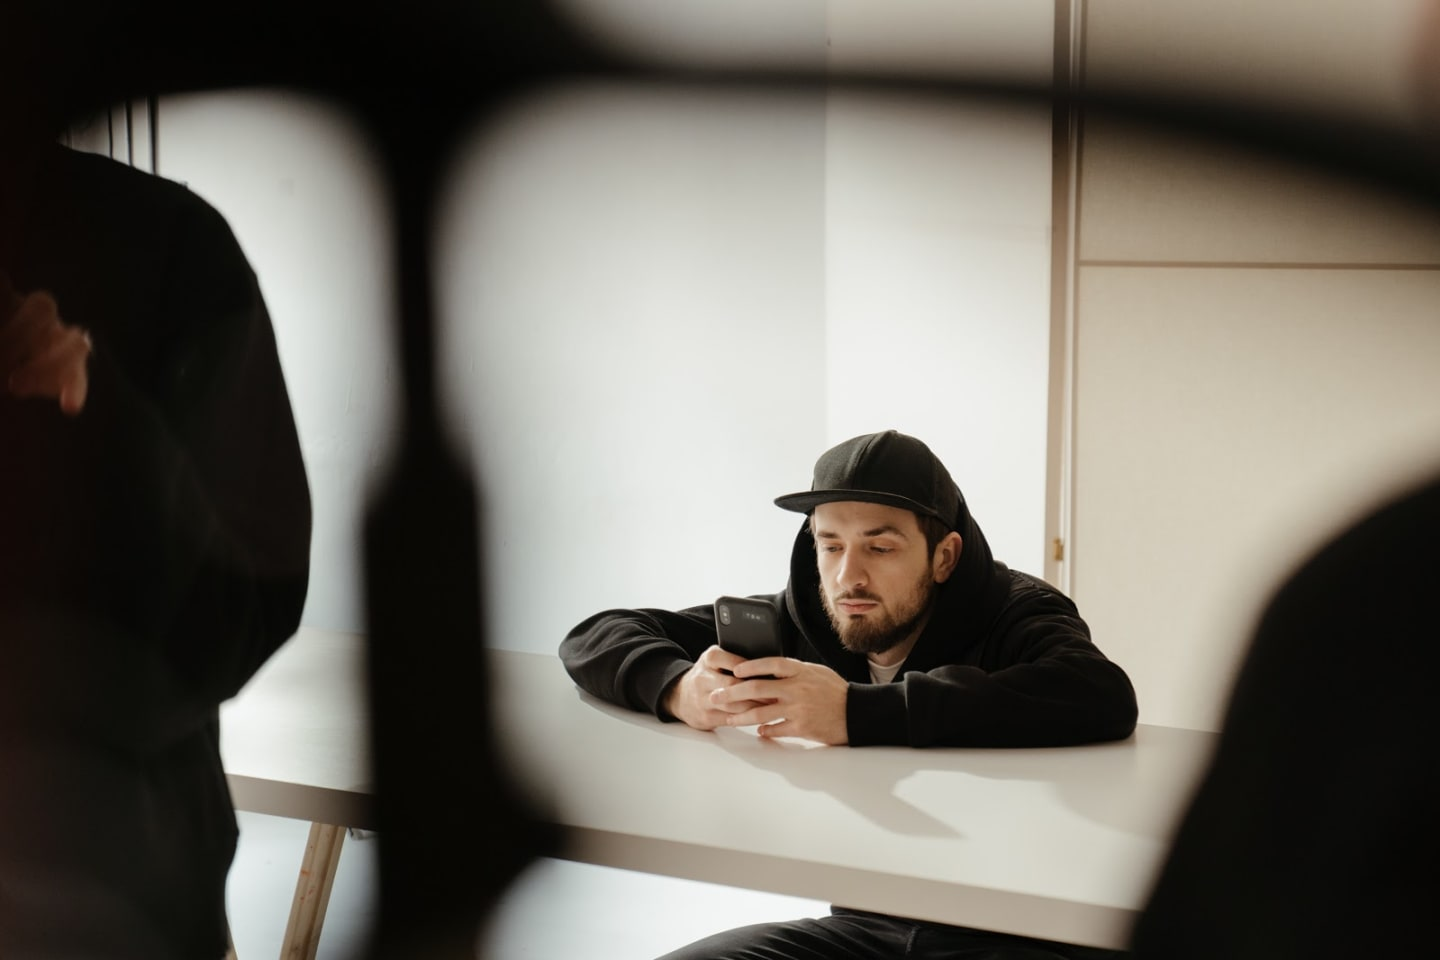 A man in a black hoodie and baseball cap sits at a desk and gazes into the phone he holds in both hands.